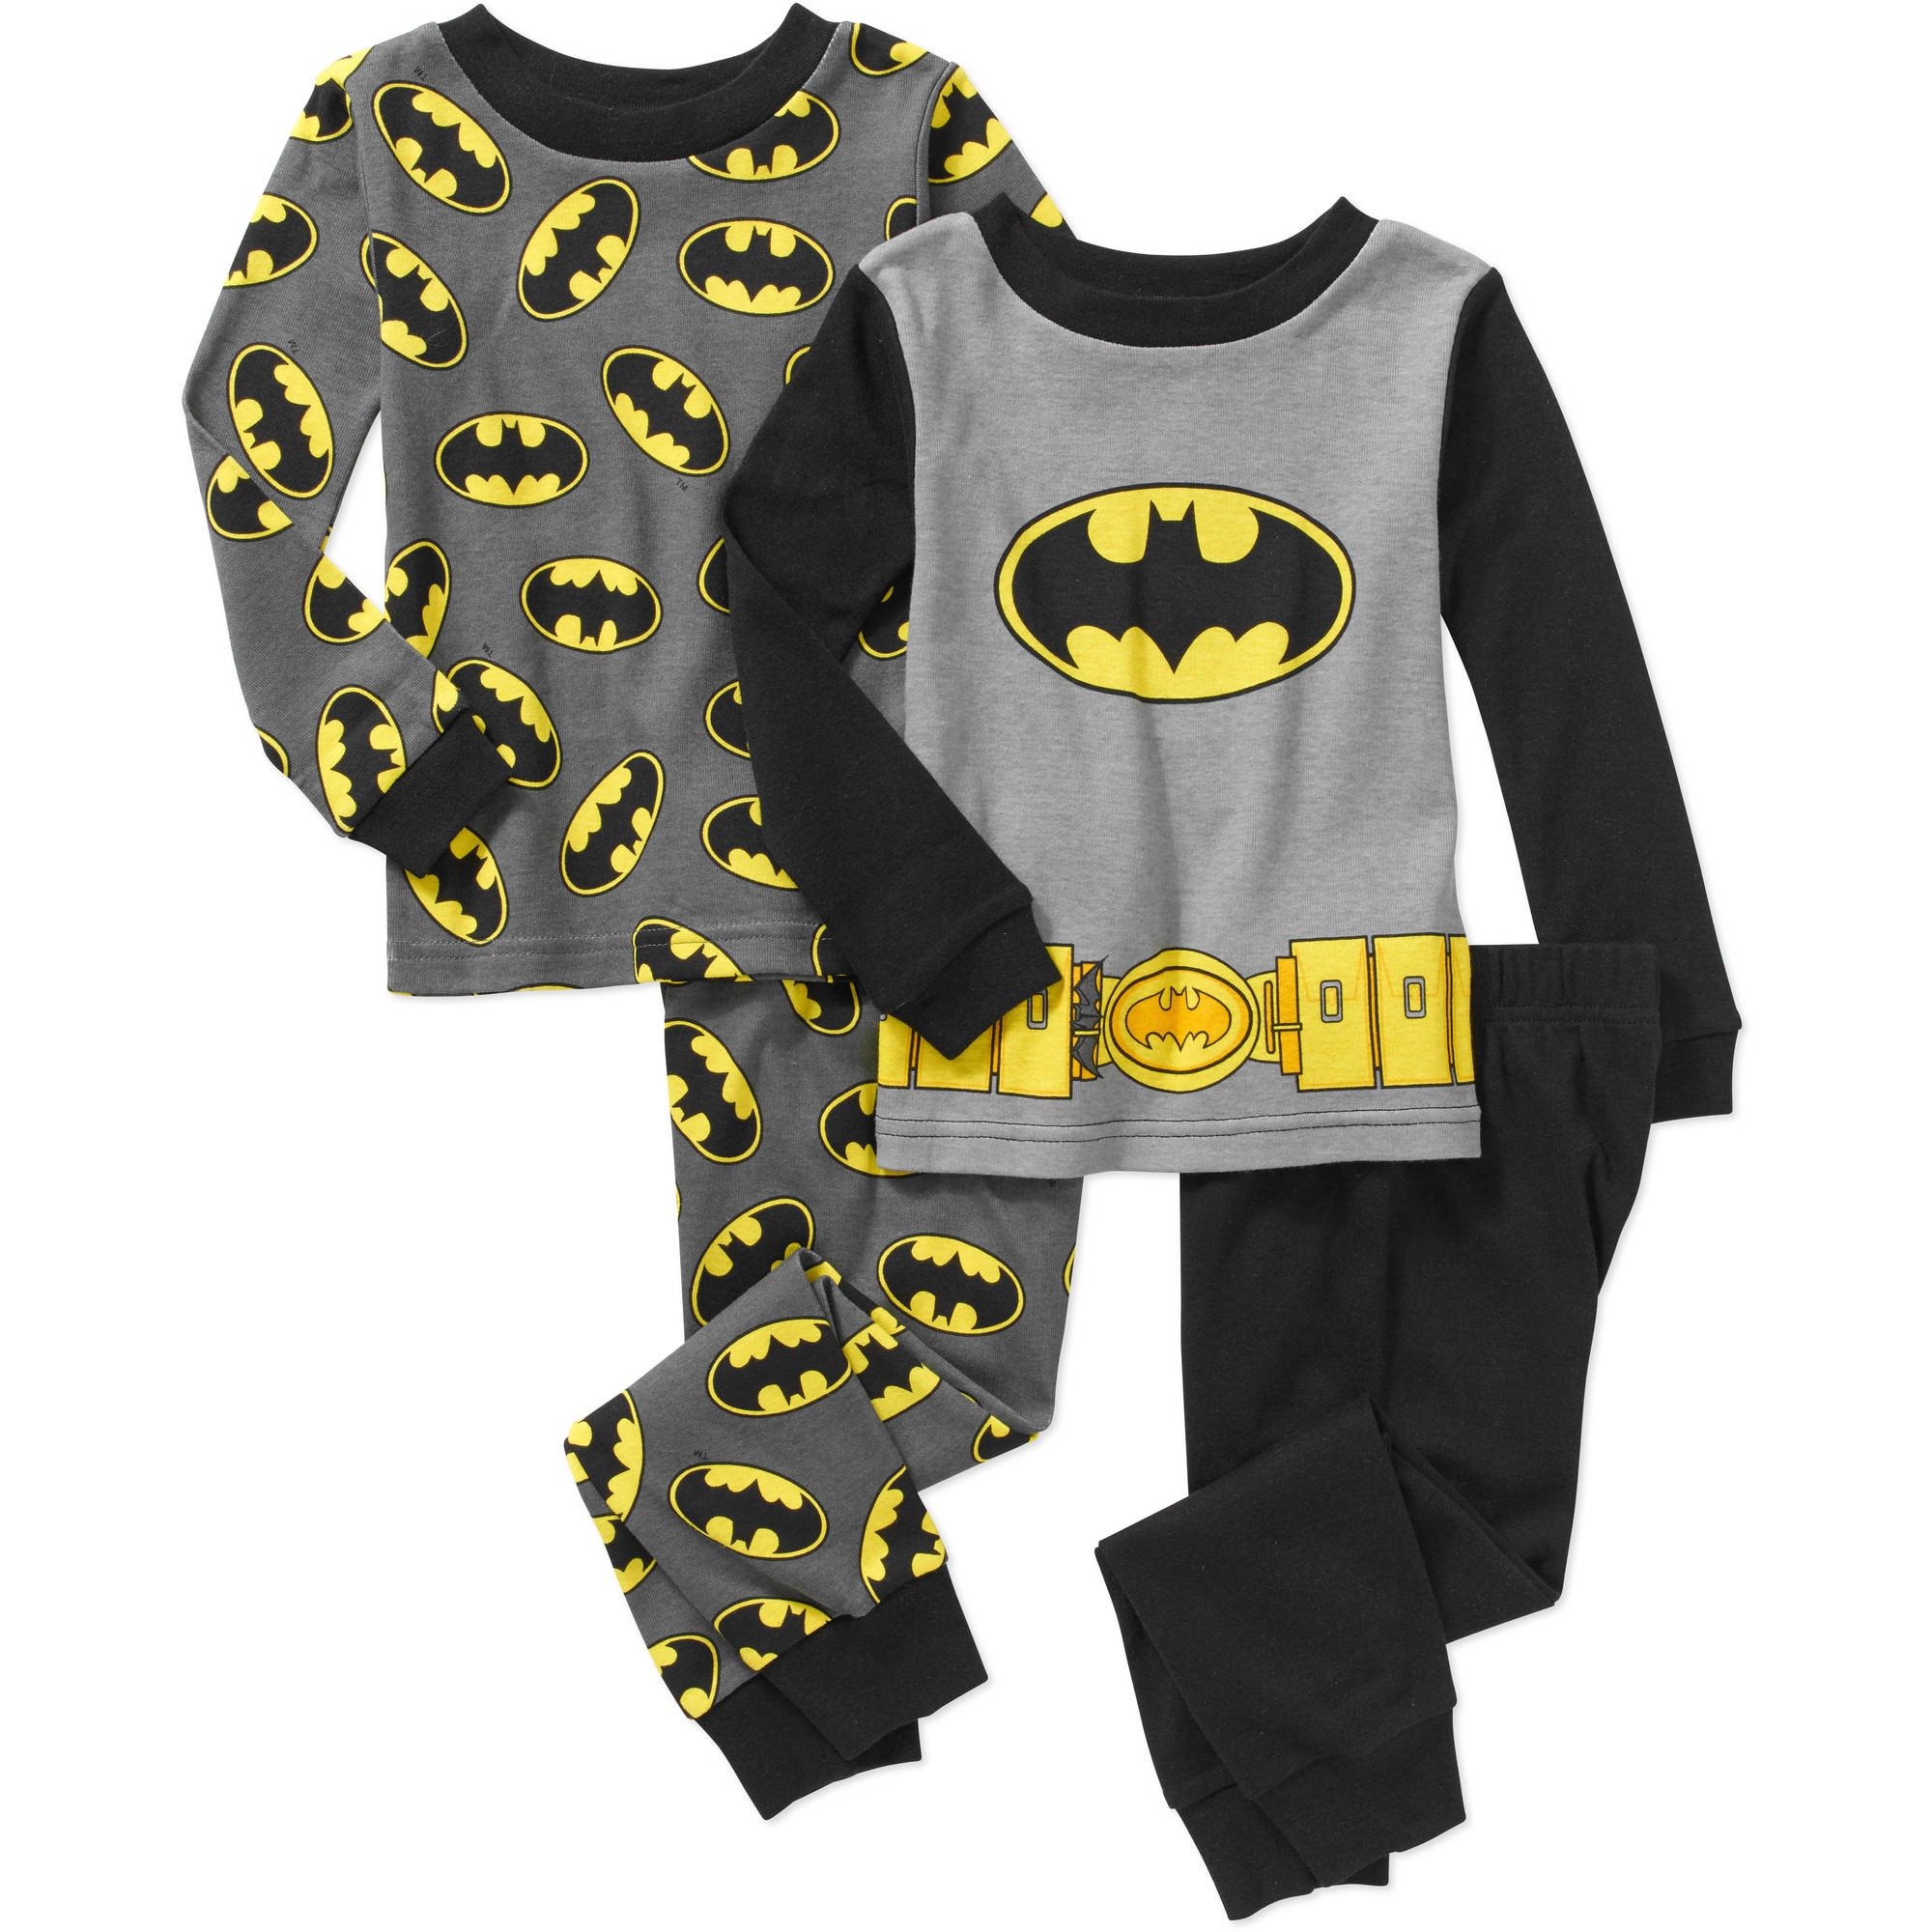 Batman Baby Toddler Boy Long Sleeve Cotton Tight Fit Pajamas, 2-Sets